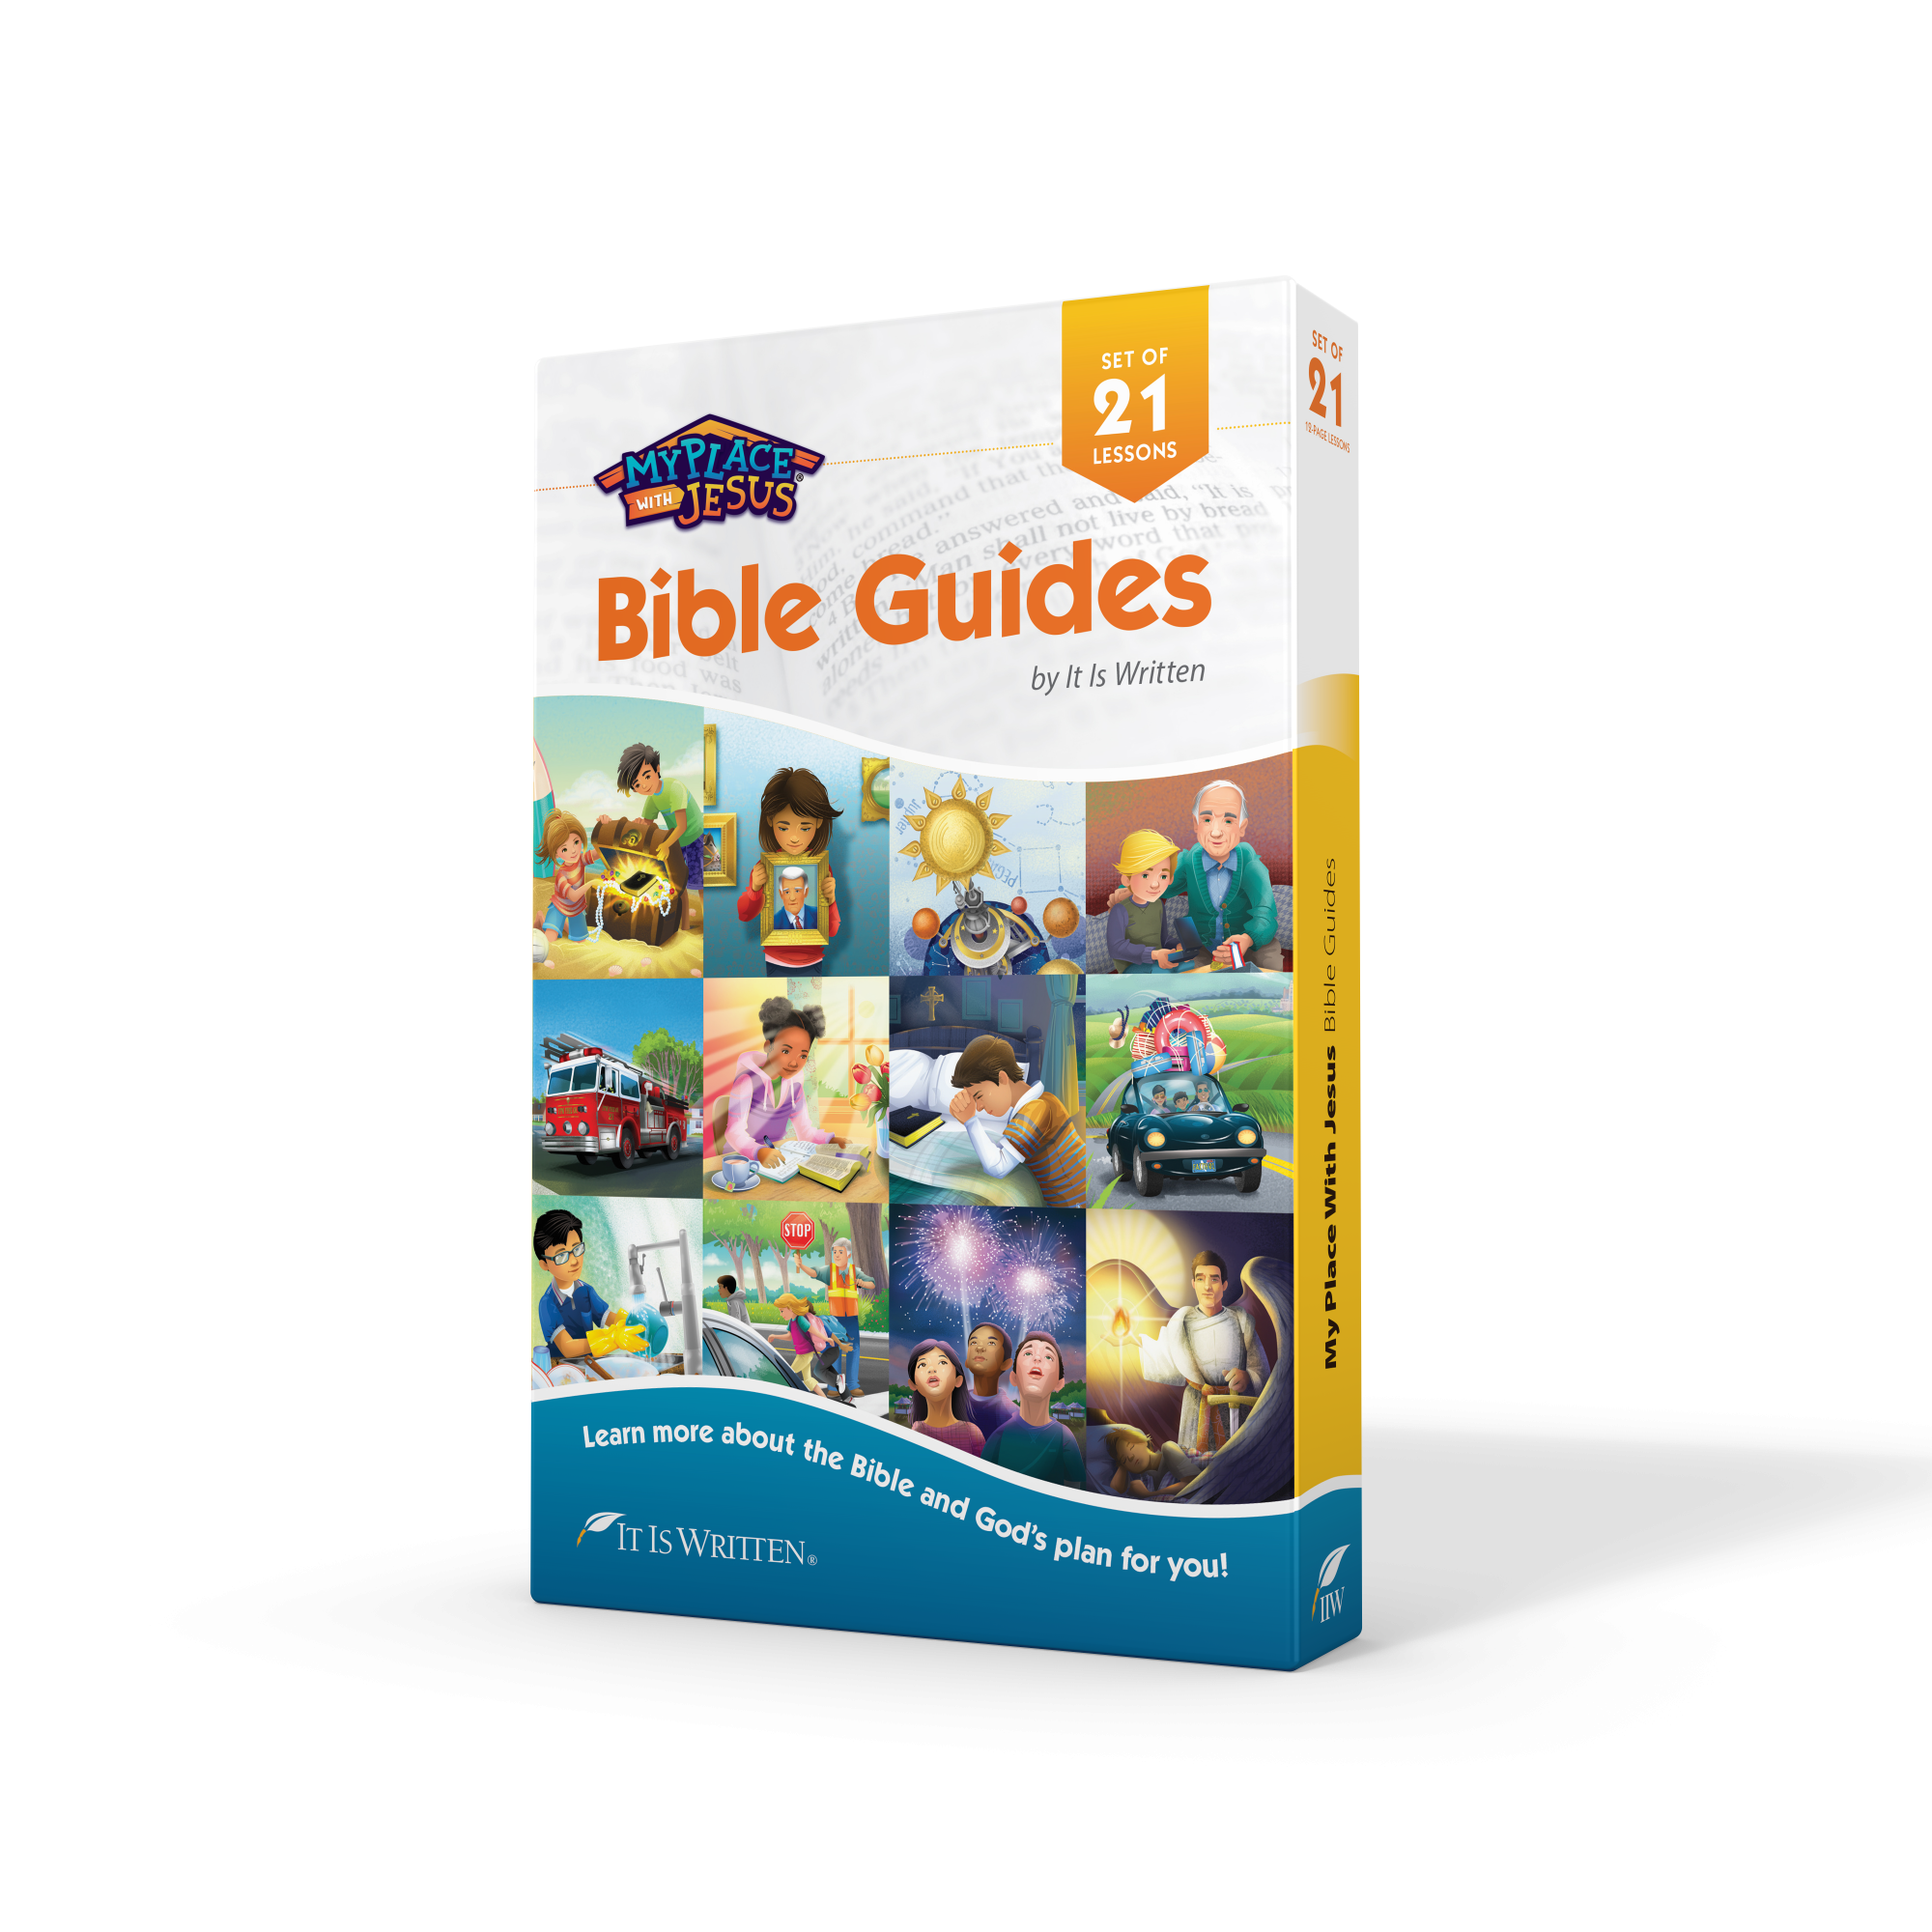 mpwj_bible_guides_box_front_from_left.png